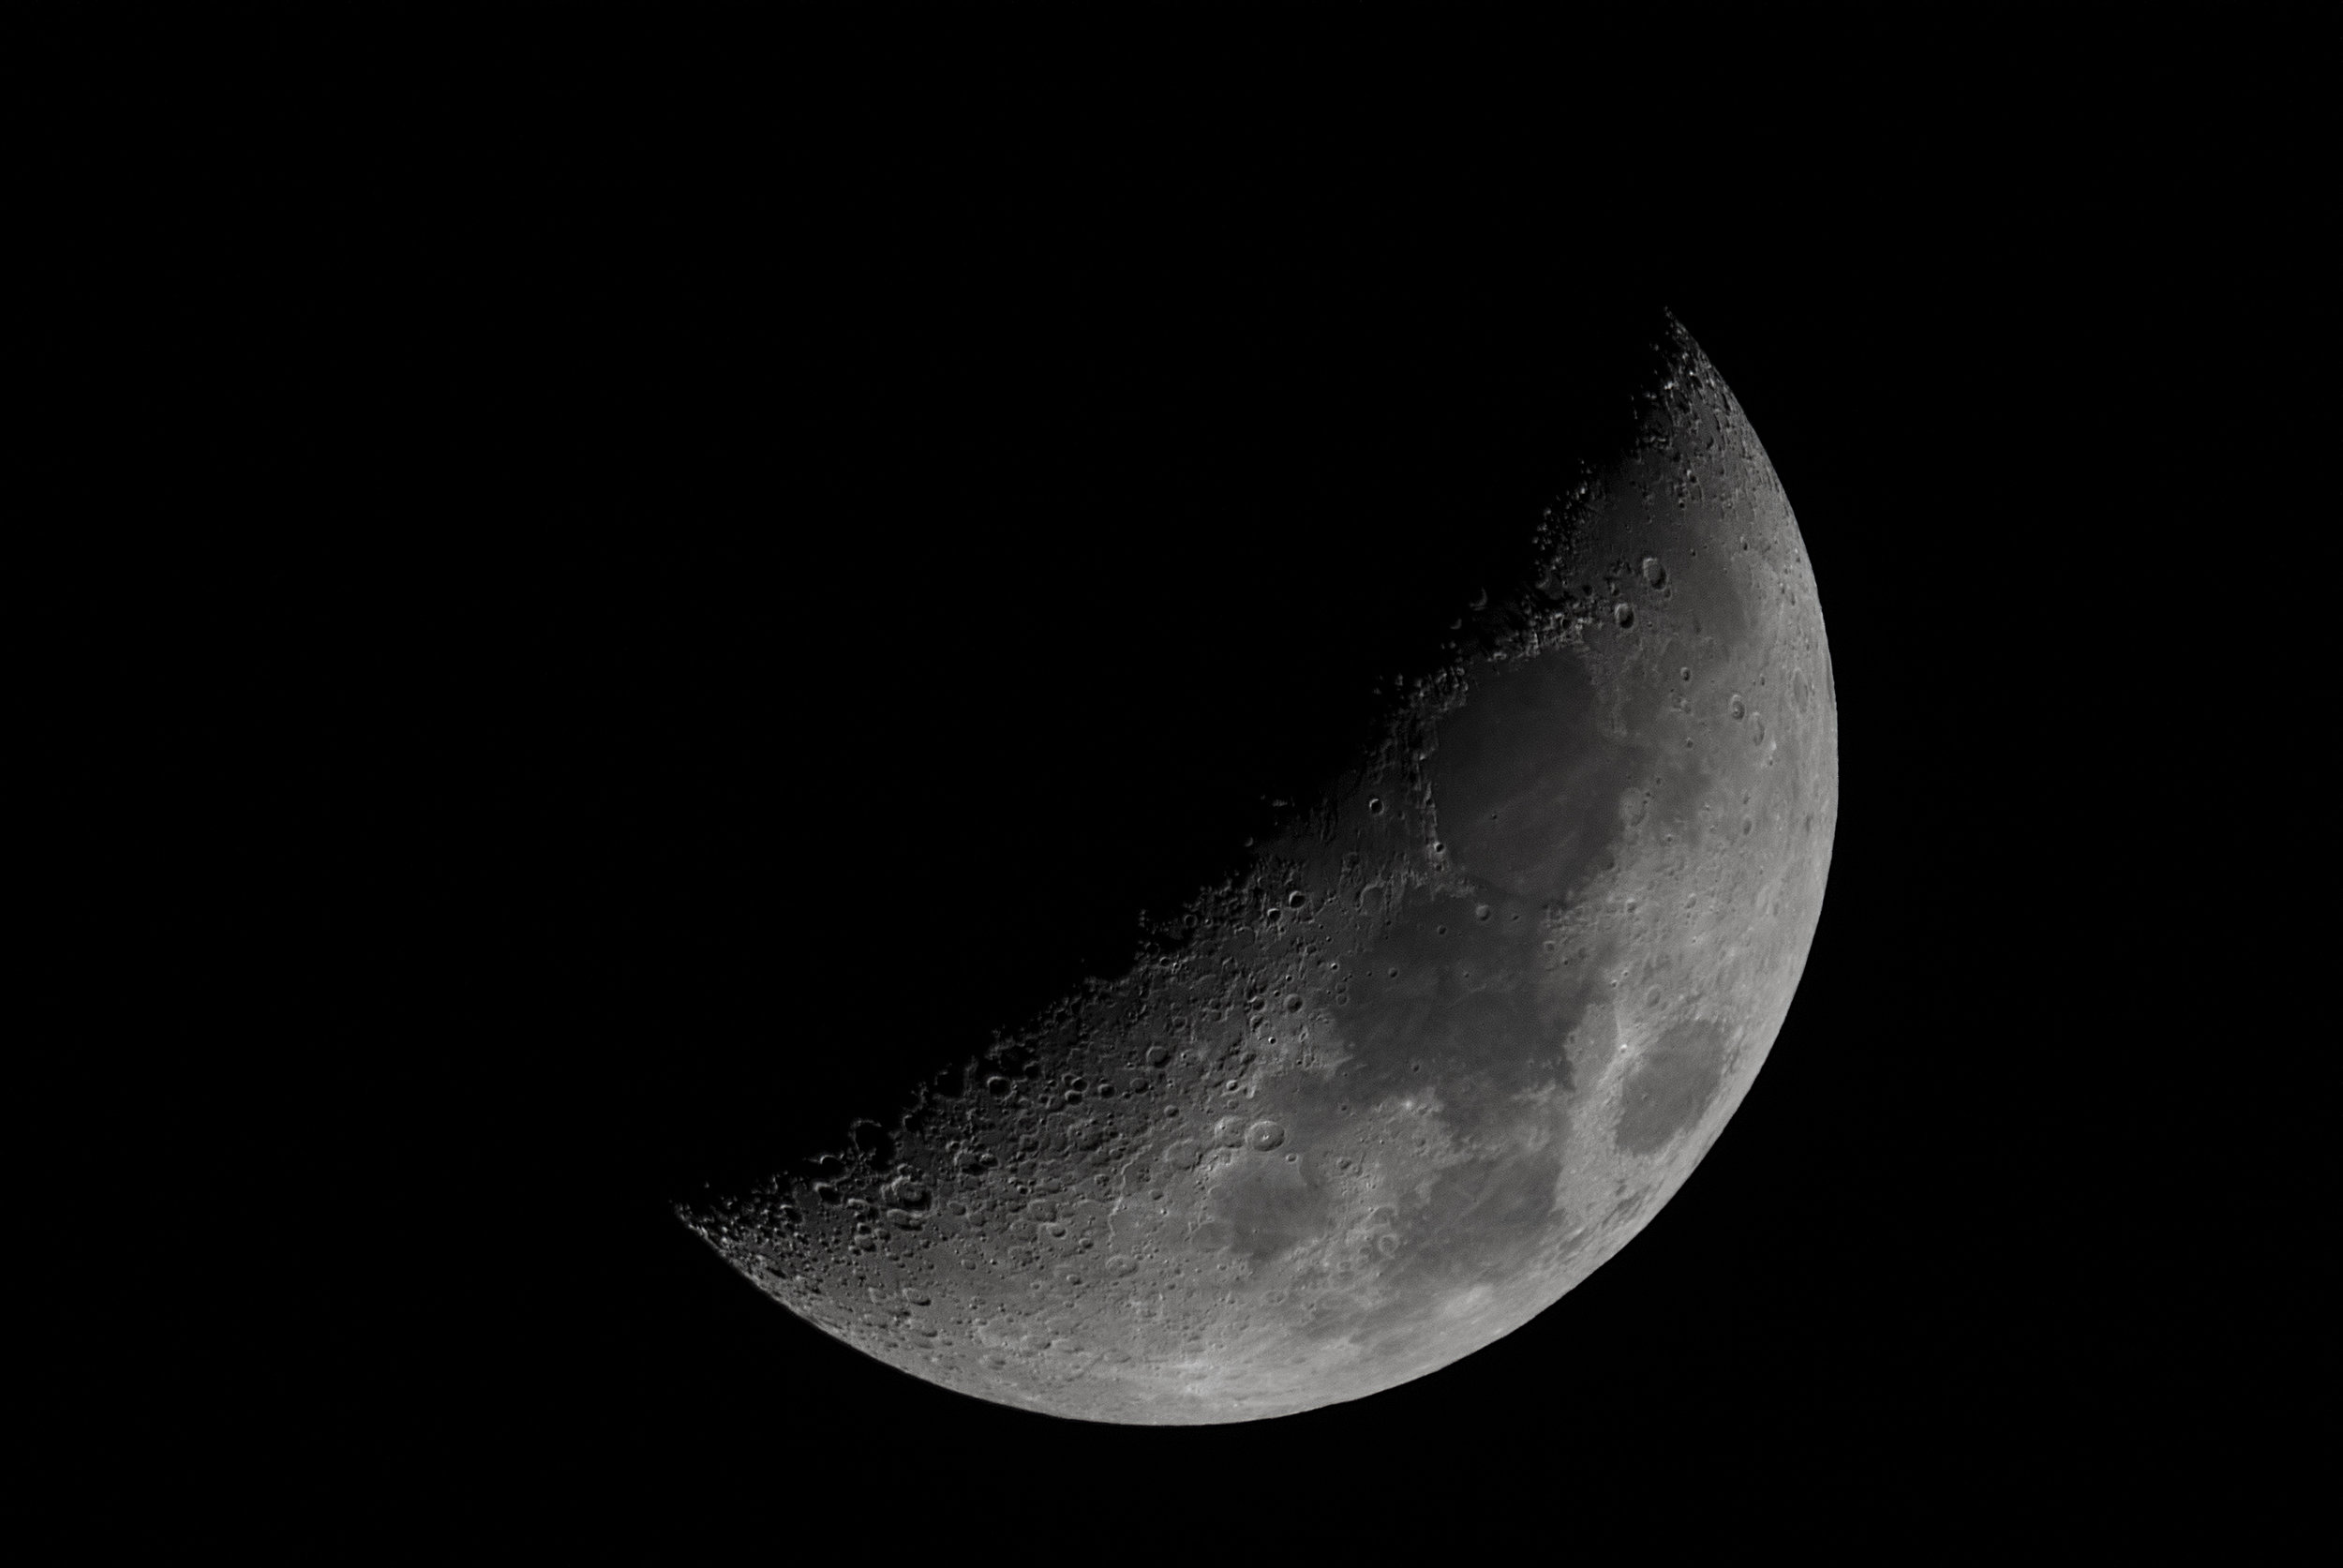 Waxing Crescent Moon - 04 Jan 2017 18:51:00 EST Nikon D750  ISO 320 1200mm f/10 1/160 sec. 9-image stack using Registak 6.0